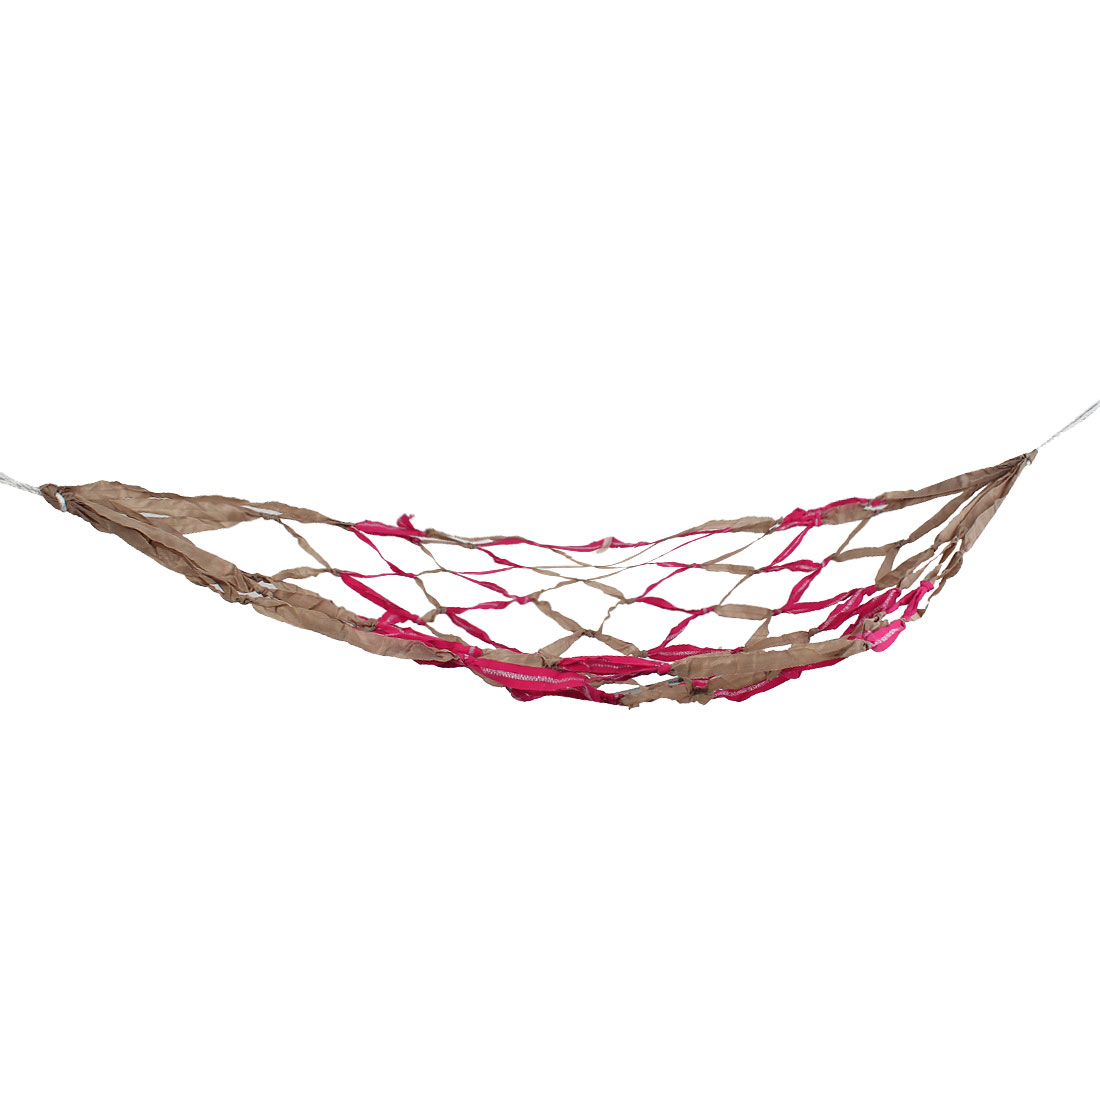 Outdoor Home Camping Canvas Swing Hanging Hammock Sleeping Bed 180cm x 160cm